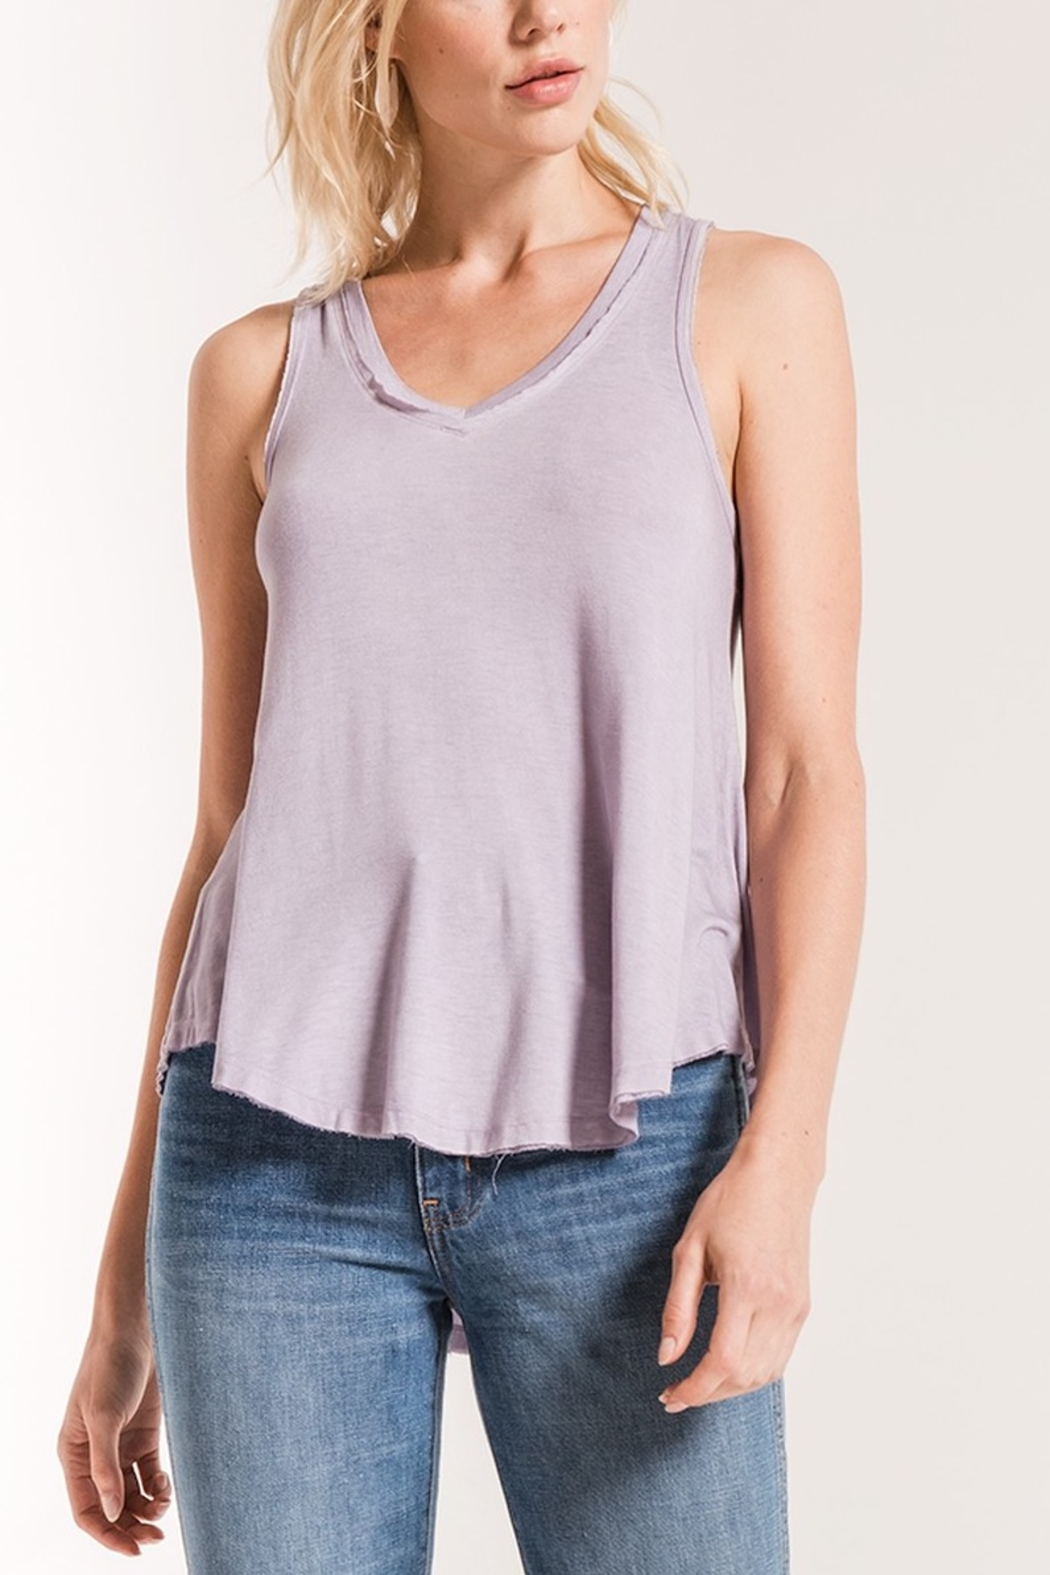 z supply The Vagabond Tank - Front Cropped Image